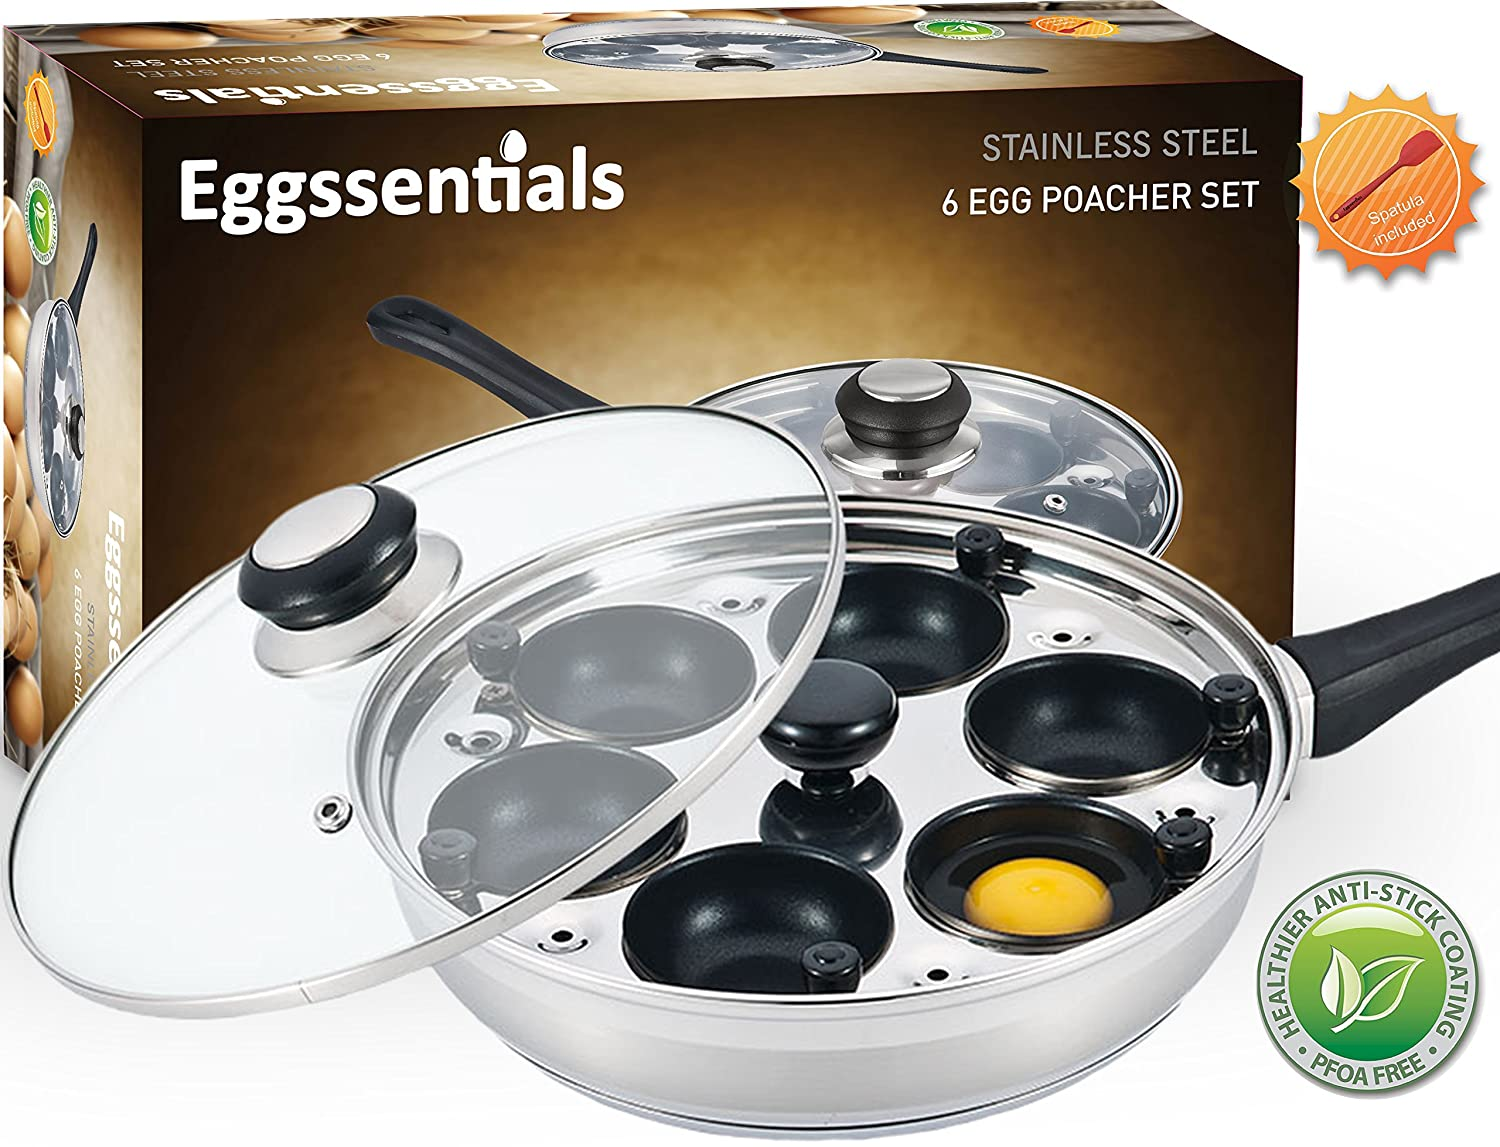 Eggssentials Poached Egg Maker - Nonstick 6 Egg Poaching Cups - Stainless Steel Egg Poacher Pan FDA Certified Food Grade Safe PFOA Free With Bonus Spatula